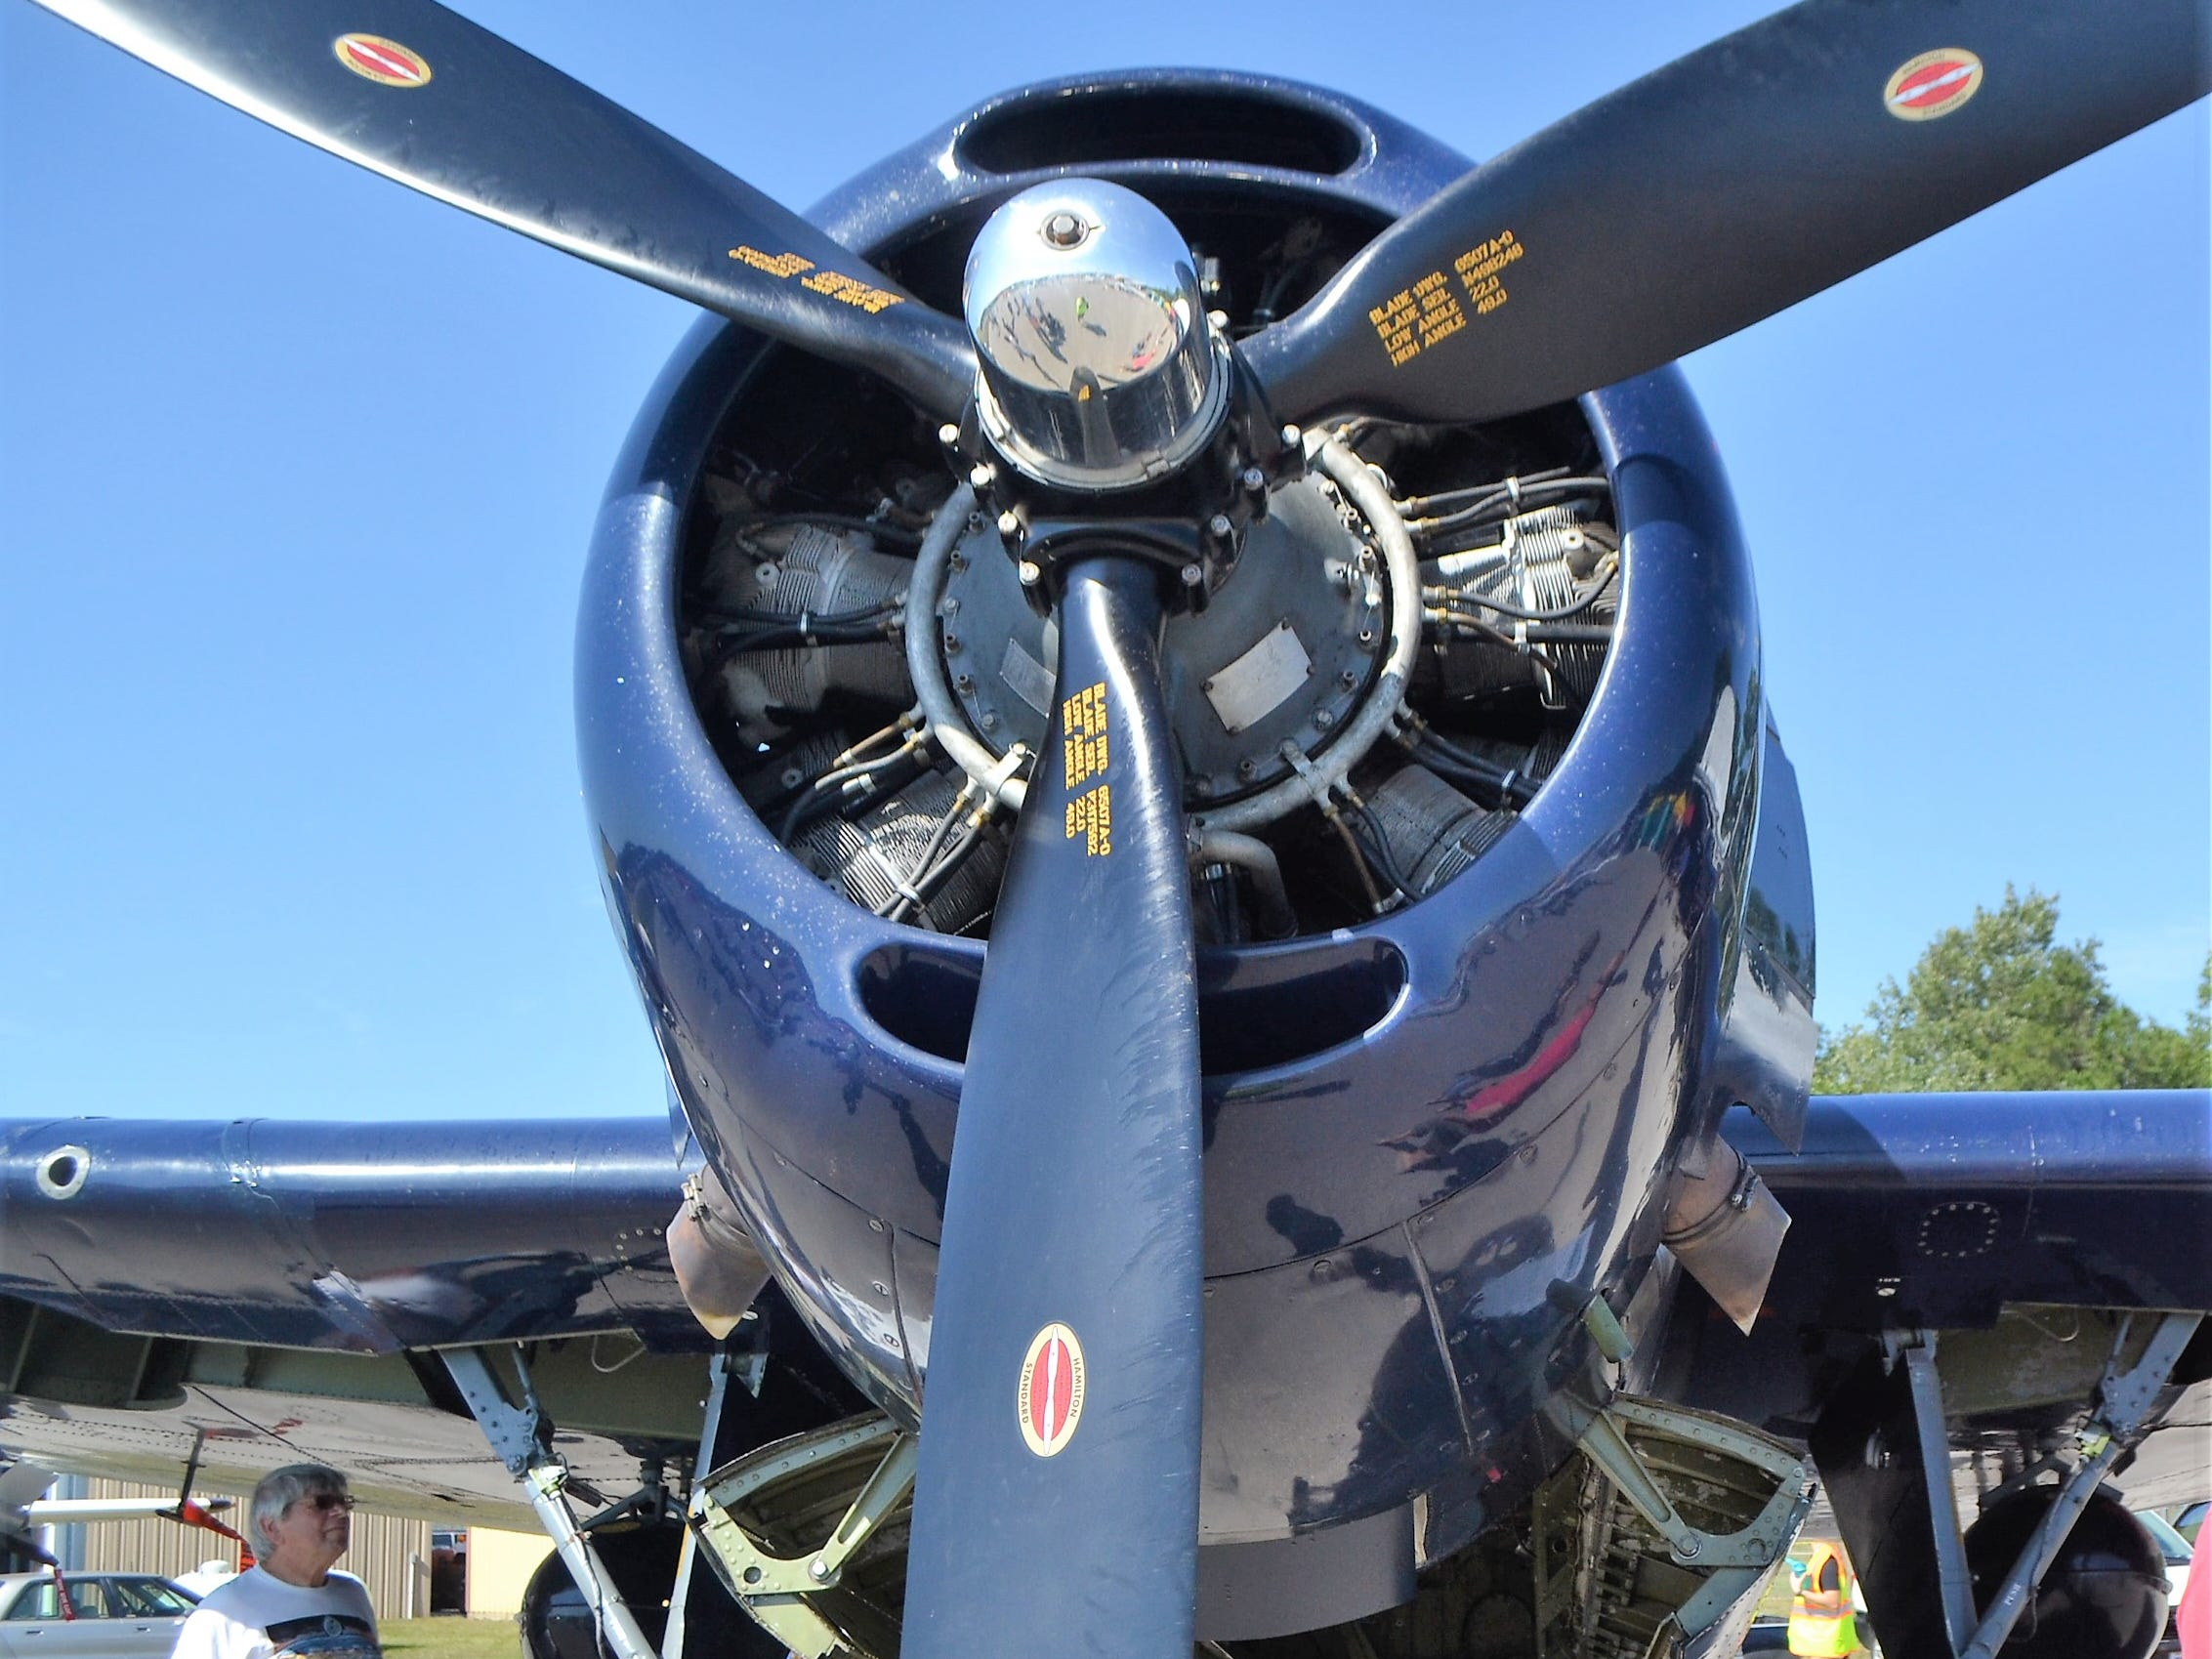 Richard Faccio of Norway, Michigan, checks out the TBM Avenger, a WWII plane, at the at the Oconto Fly-in, Car & Tractor Show on Sept. 15 at the Oconto-J. Douglas Bake Municipal Airport. Faccio had brought his 1928 street rod to the show but said he wanted to see the planes on display.